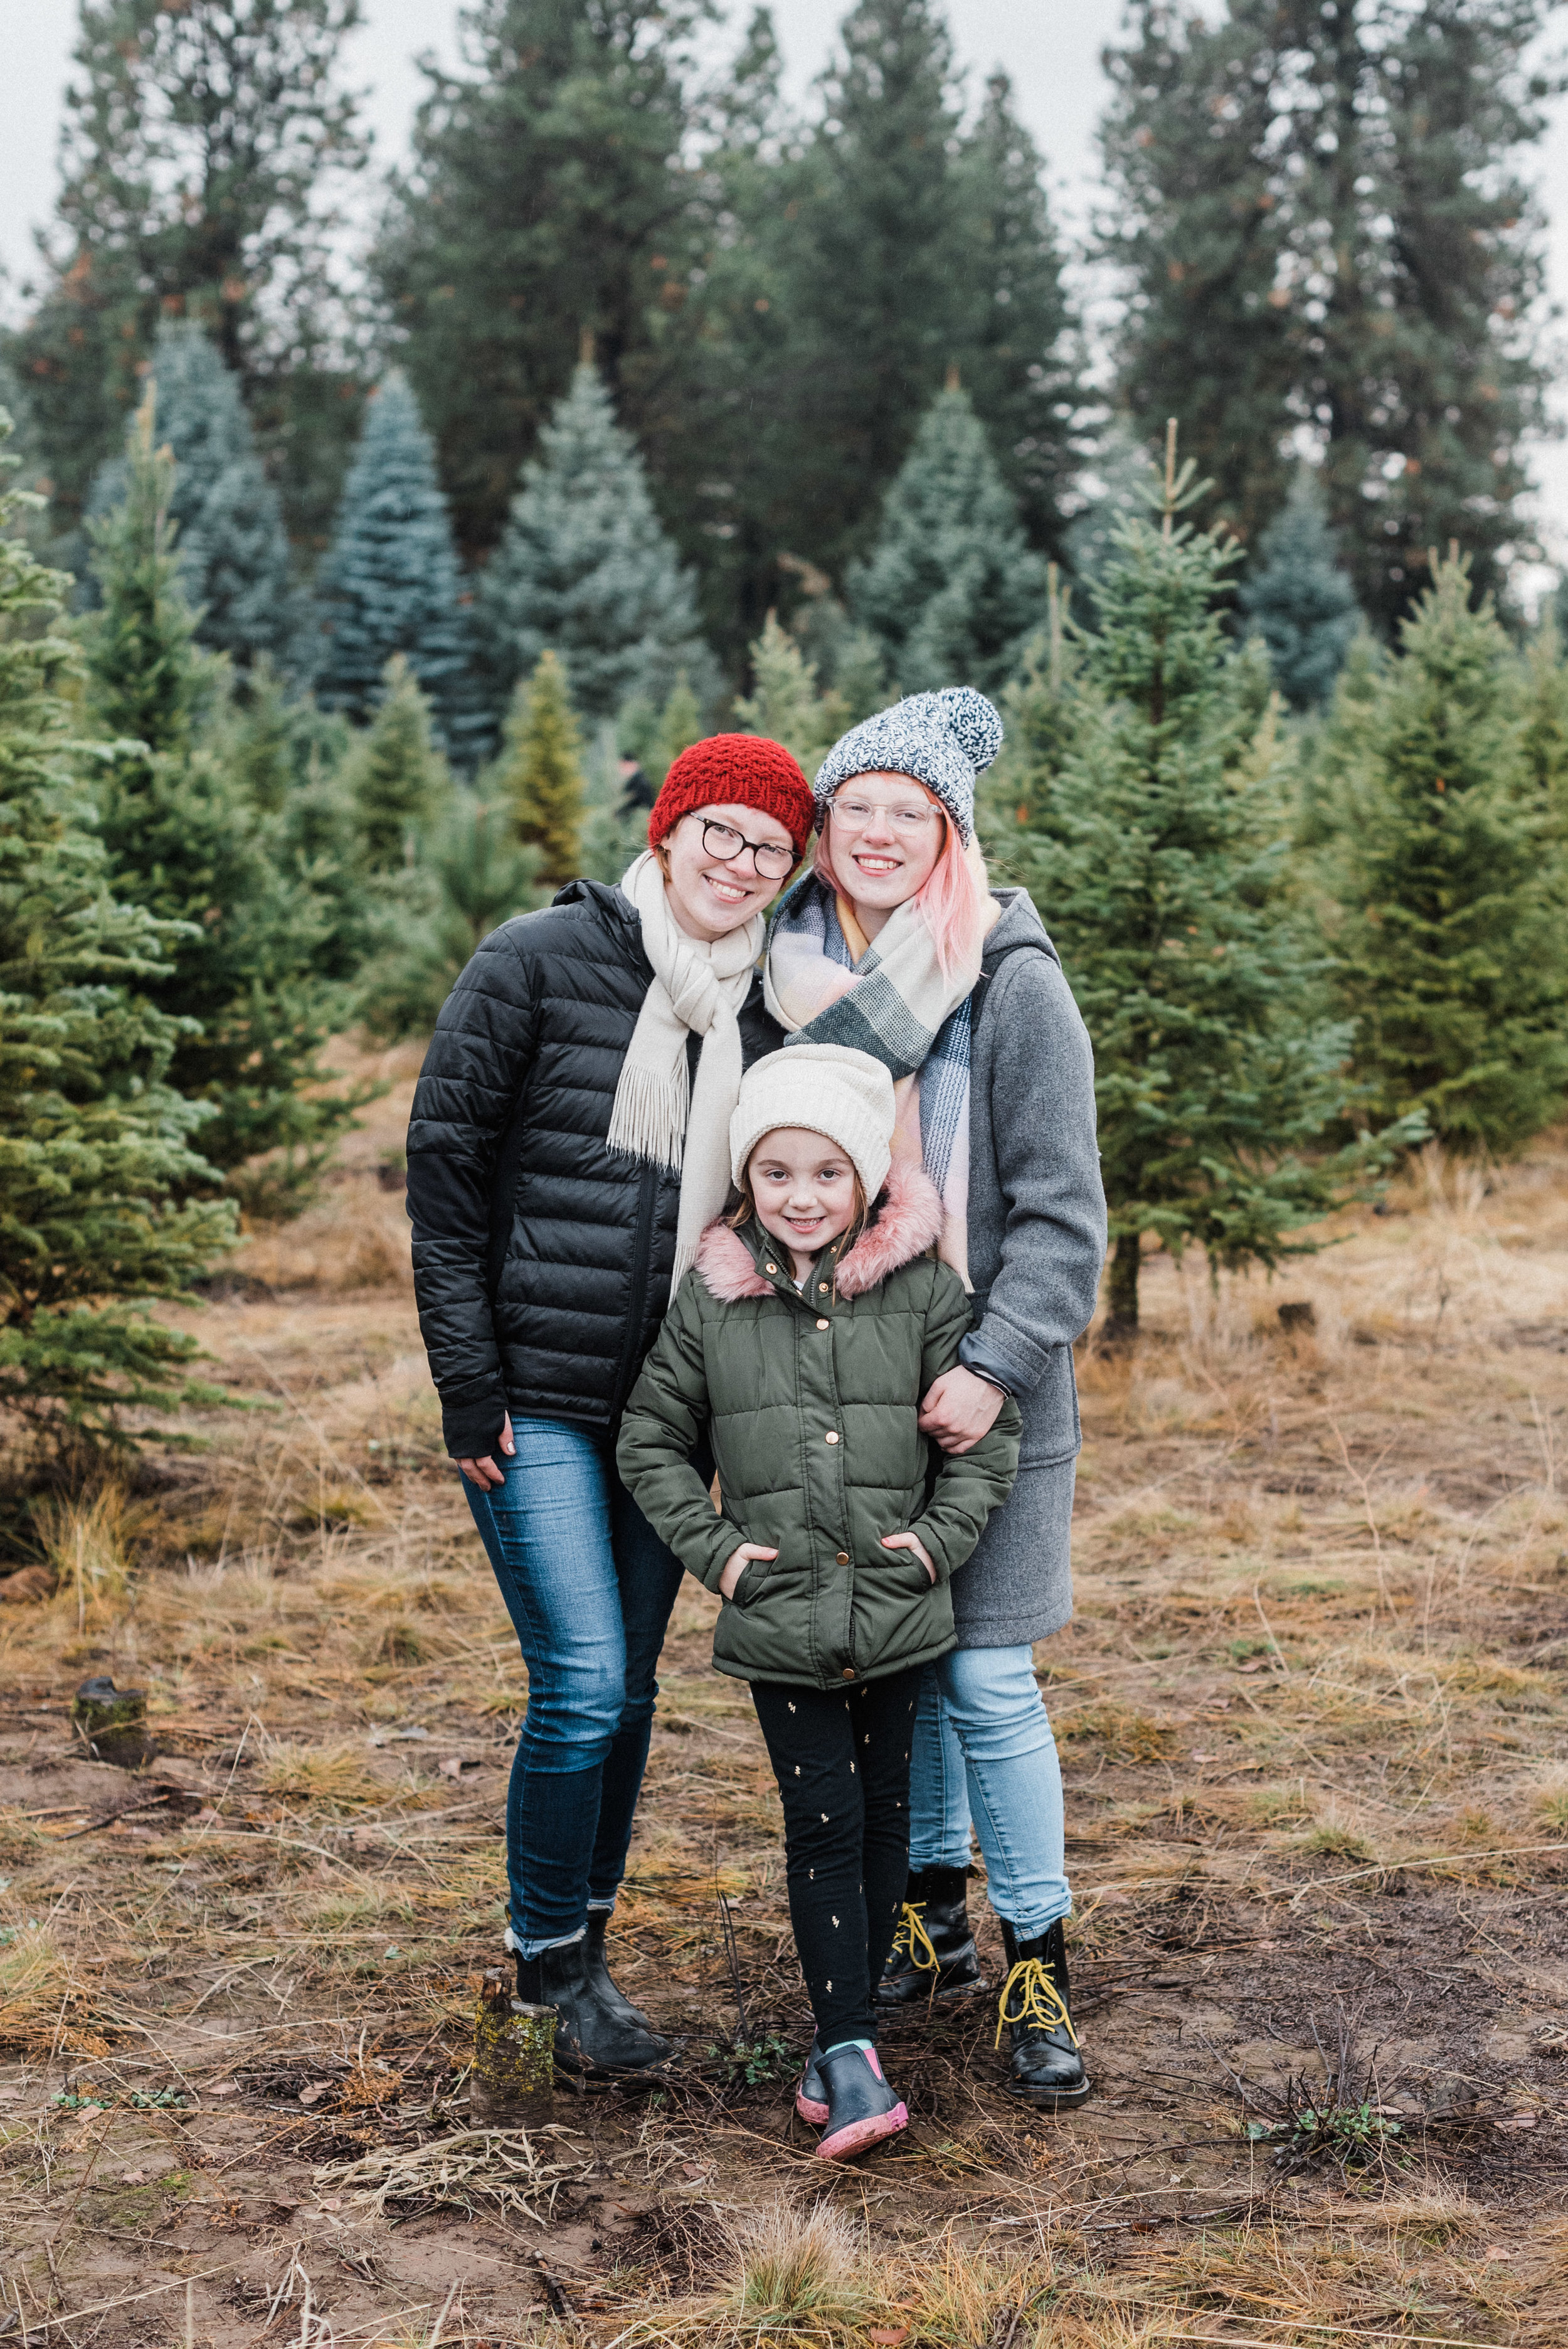 greenbluff-christmas-tree-family-outing-2018 (19 of 21).jpg